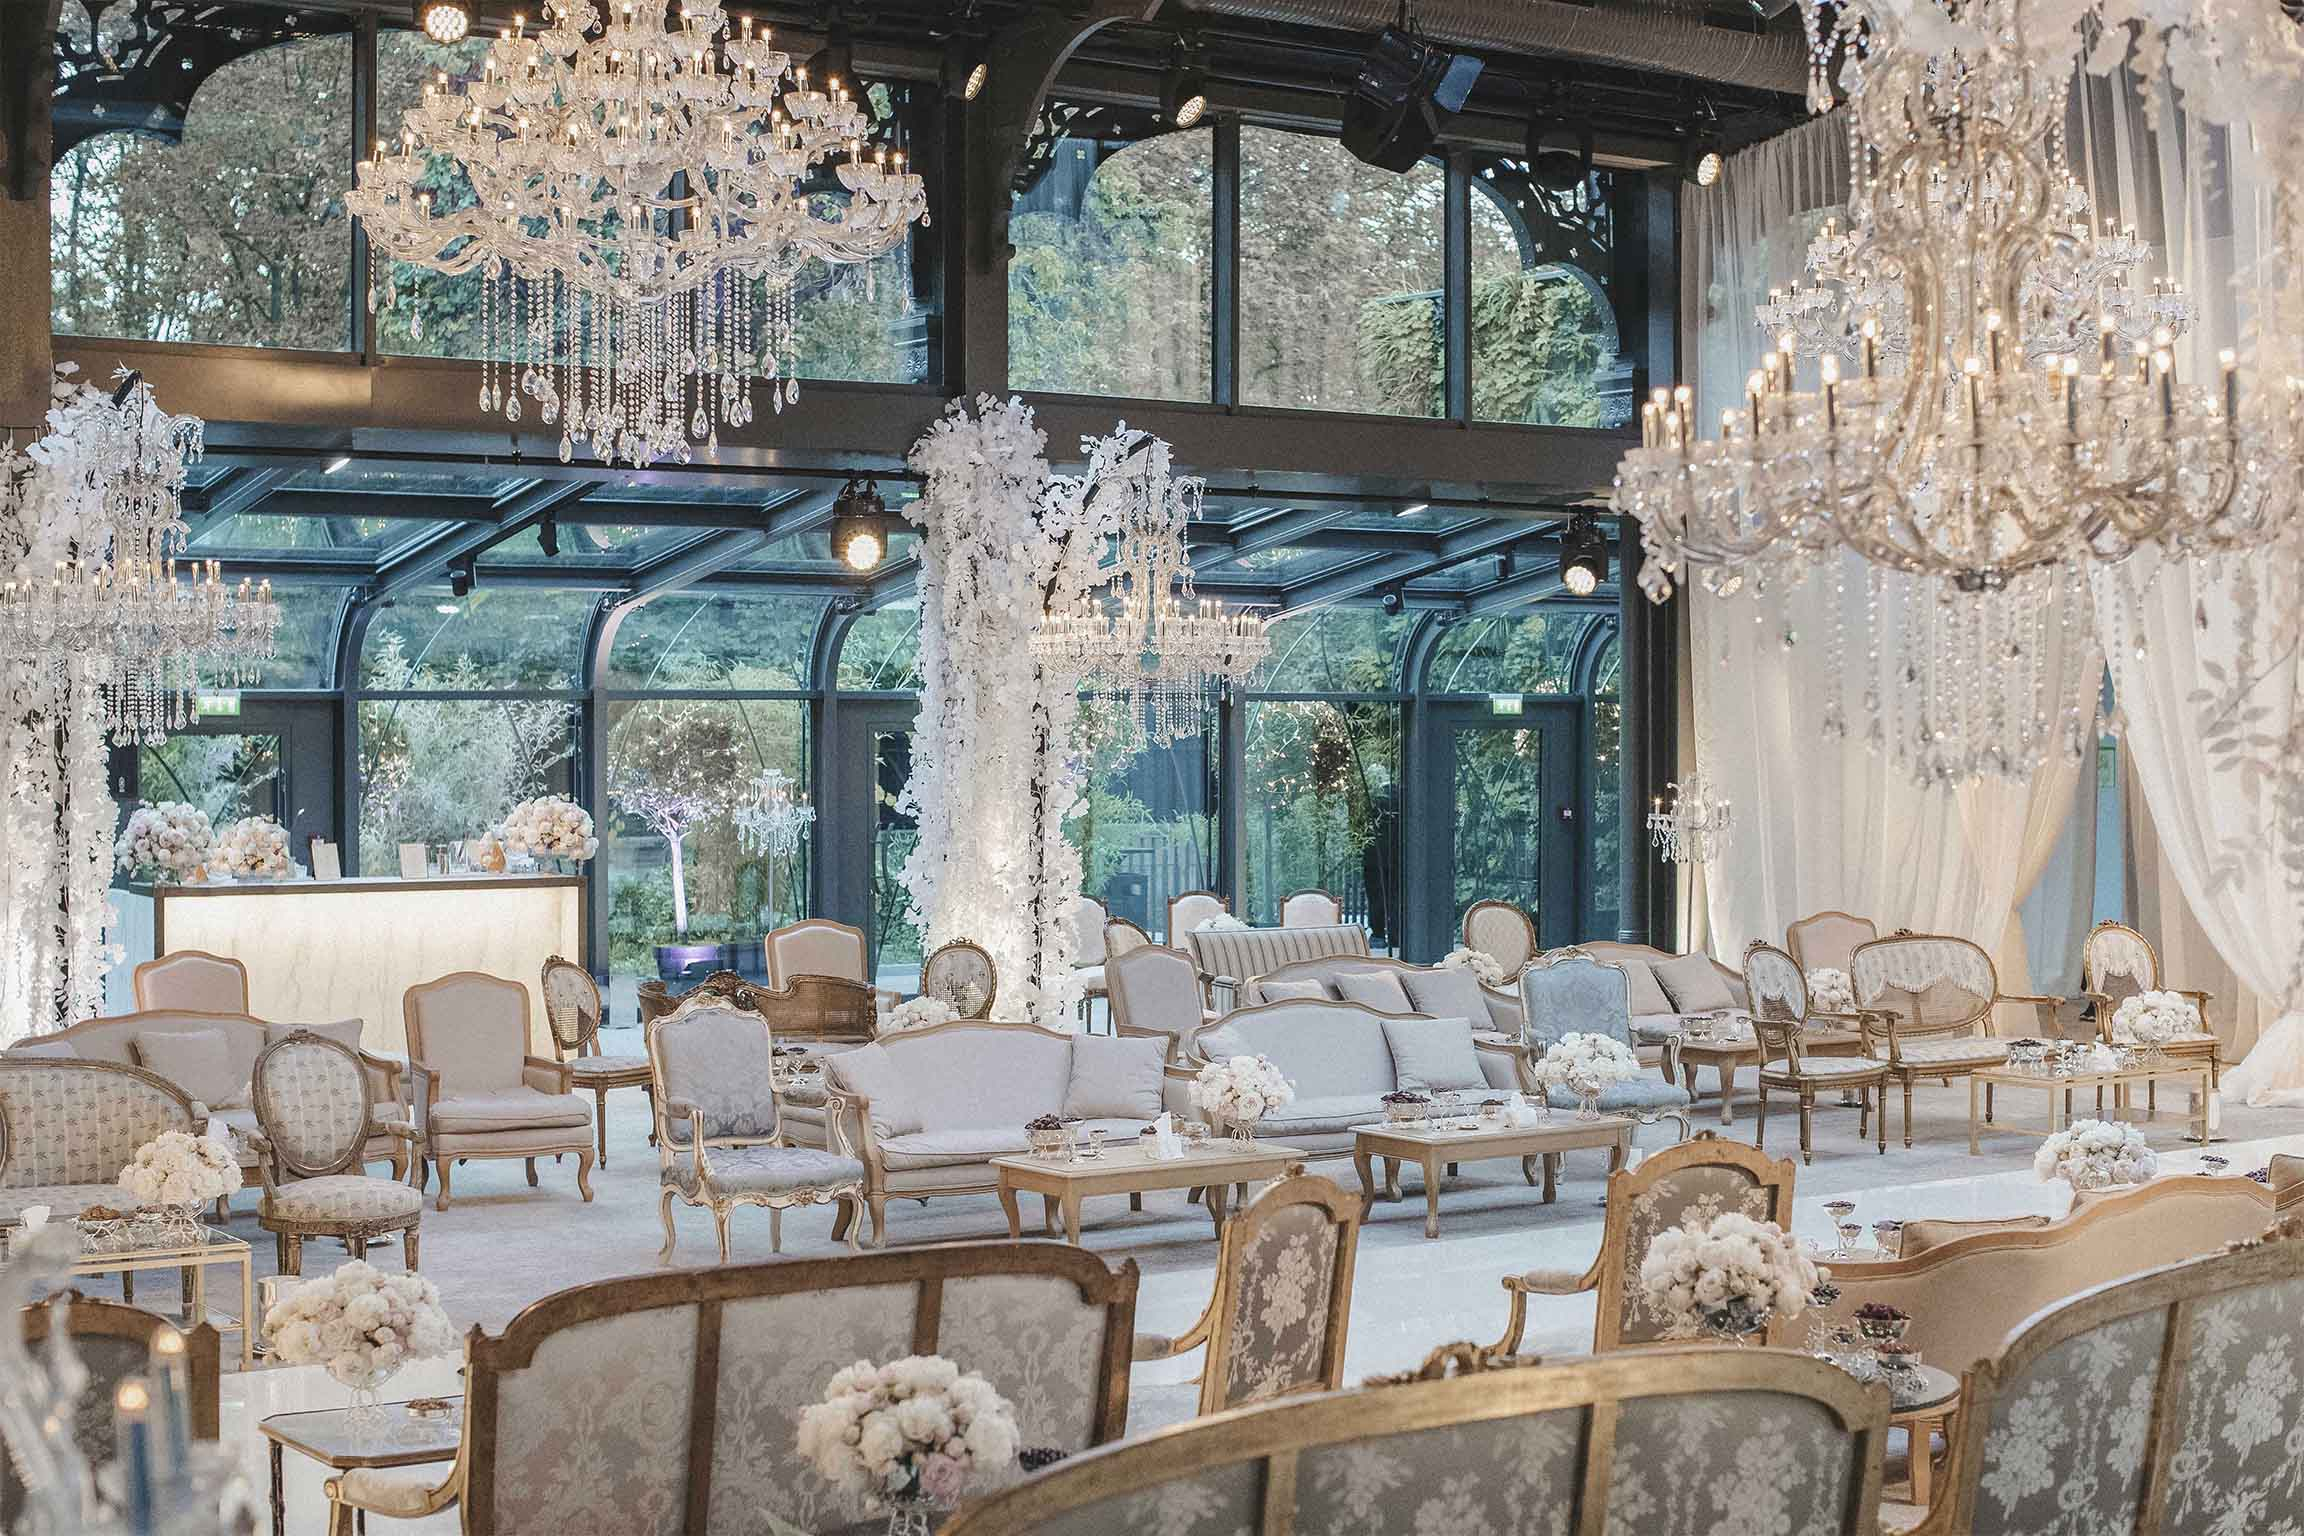 WEDDING - DATE: AUGUST, 2018LOCATION: PARIS, FRANCENUMBER OF GUESTS: 200